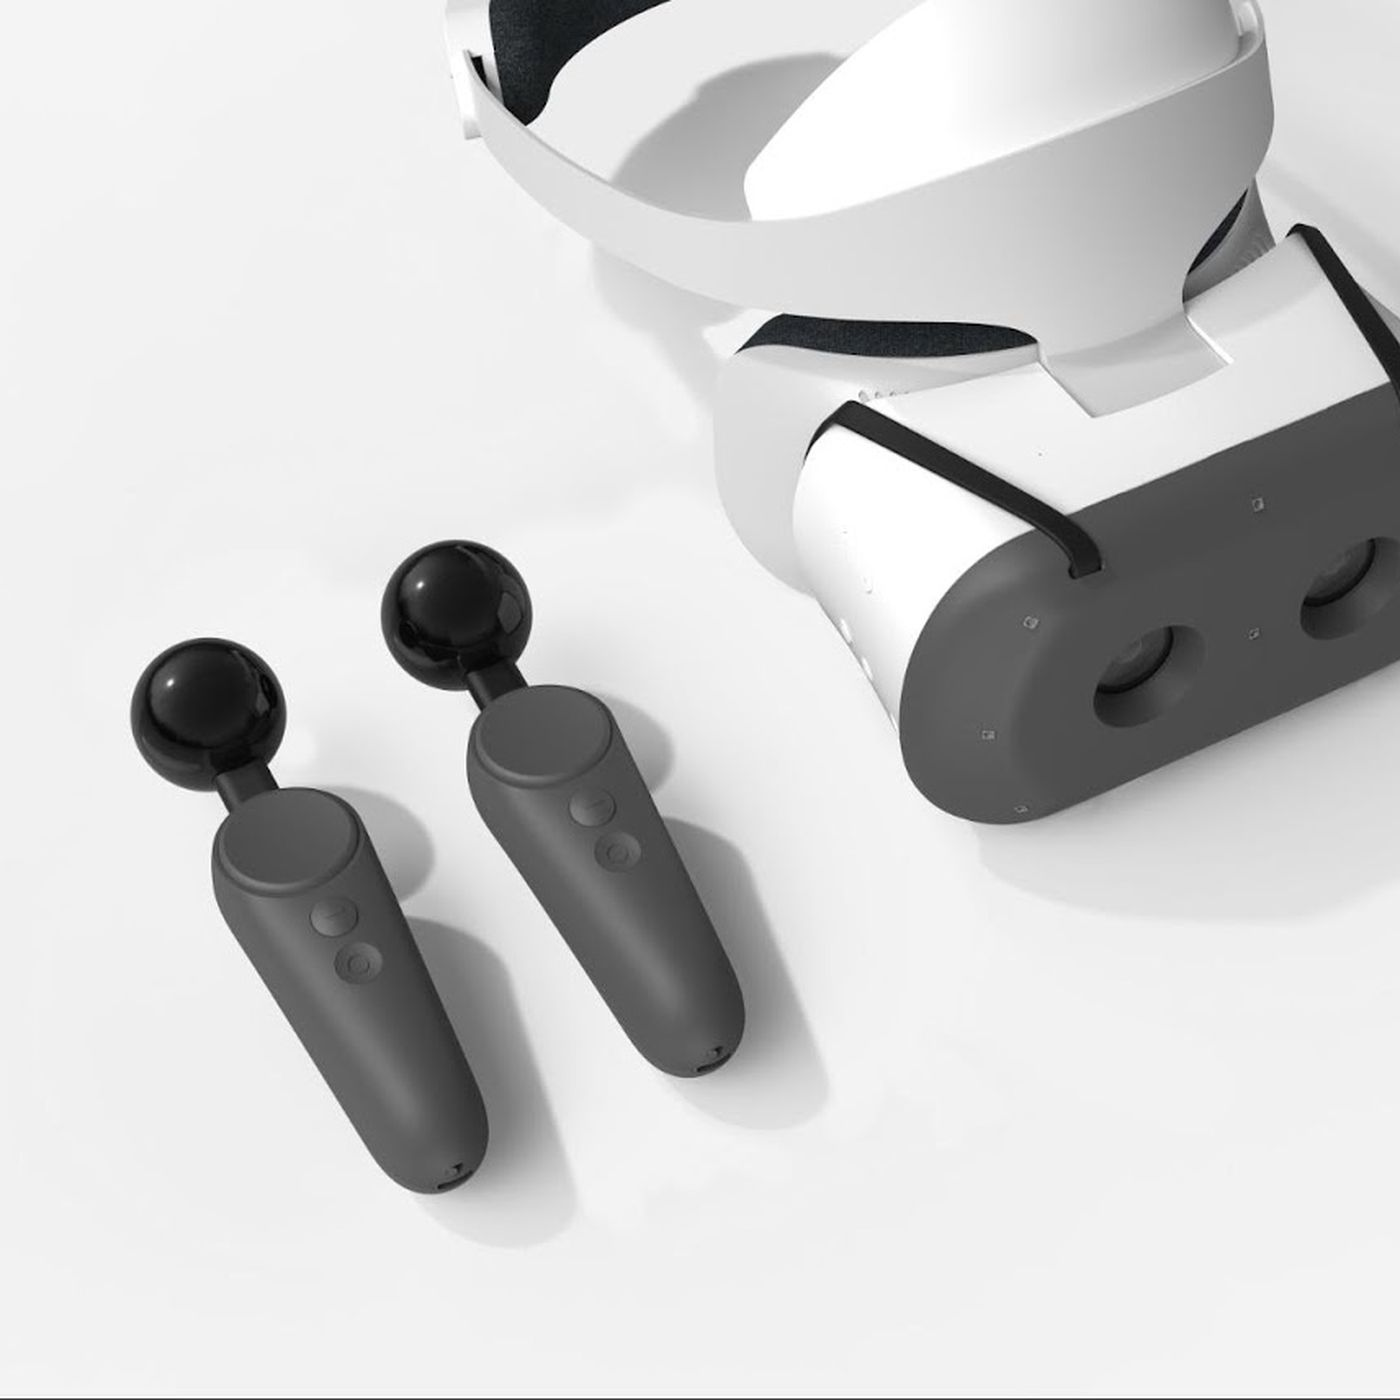 Google built VR motion controllers for the Lenovo Mirage